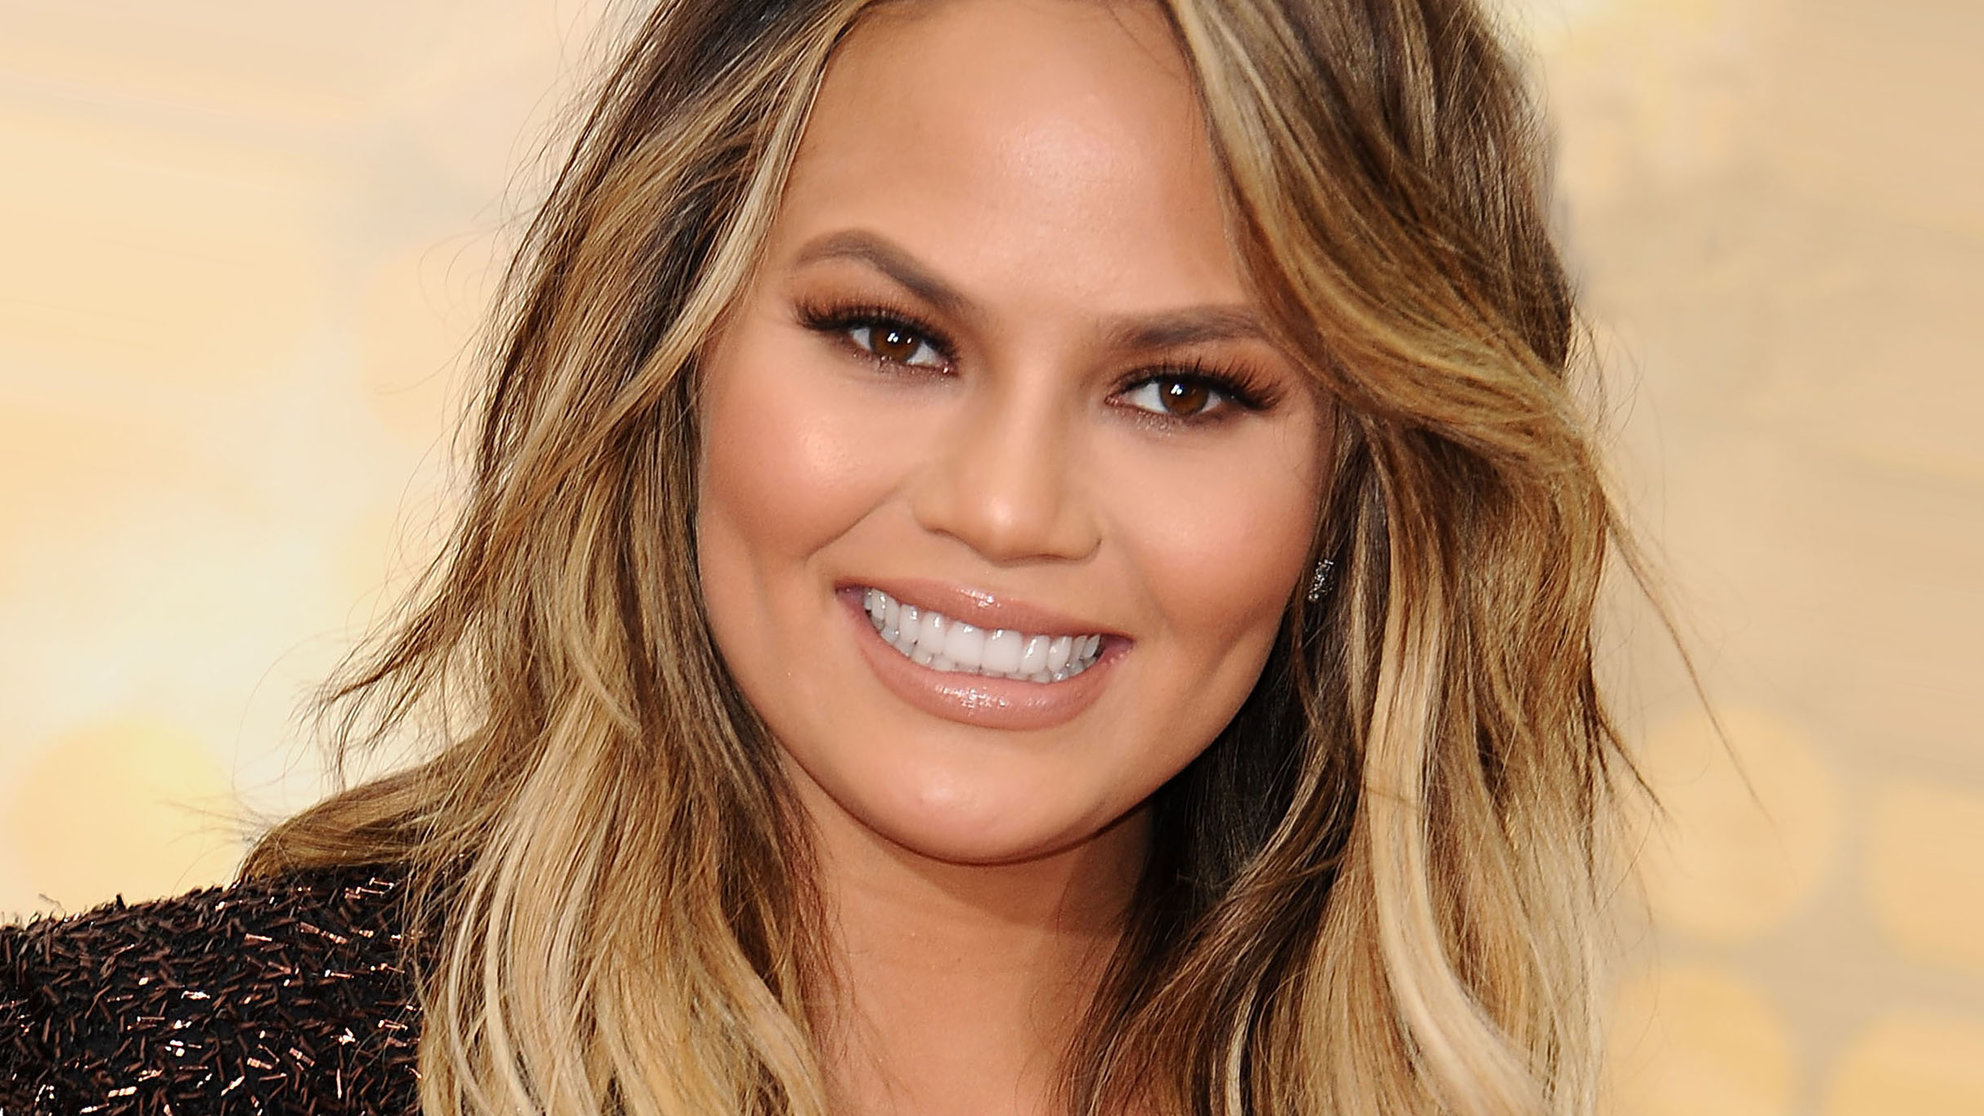 Chrissy Teigen Gets Honest With Fans by Sharing Another Photo of Her Stretch Marks: 'Whatevs'